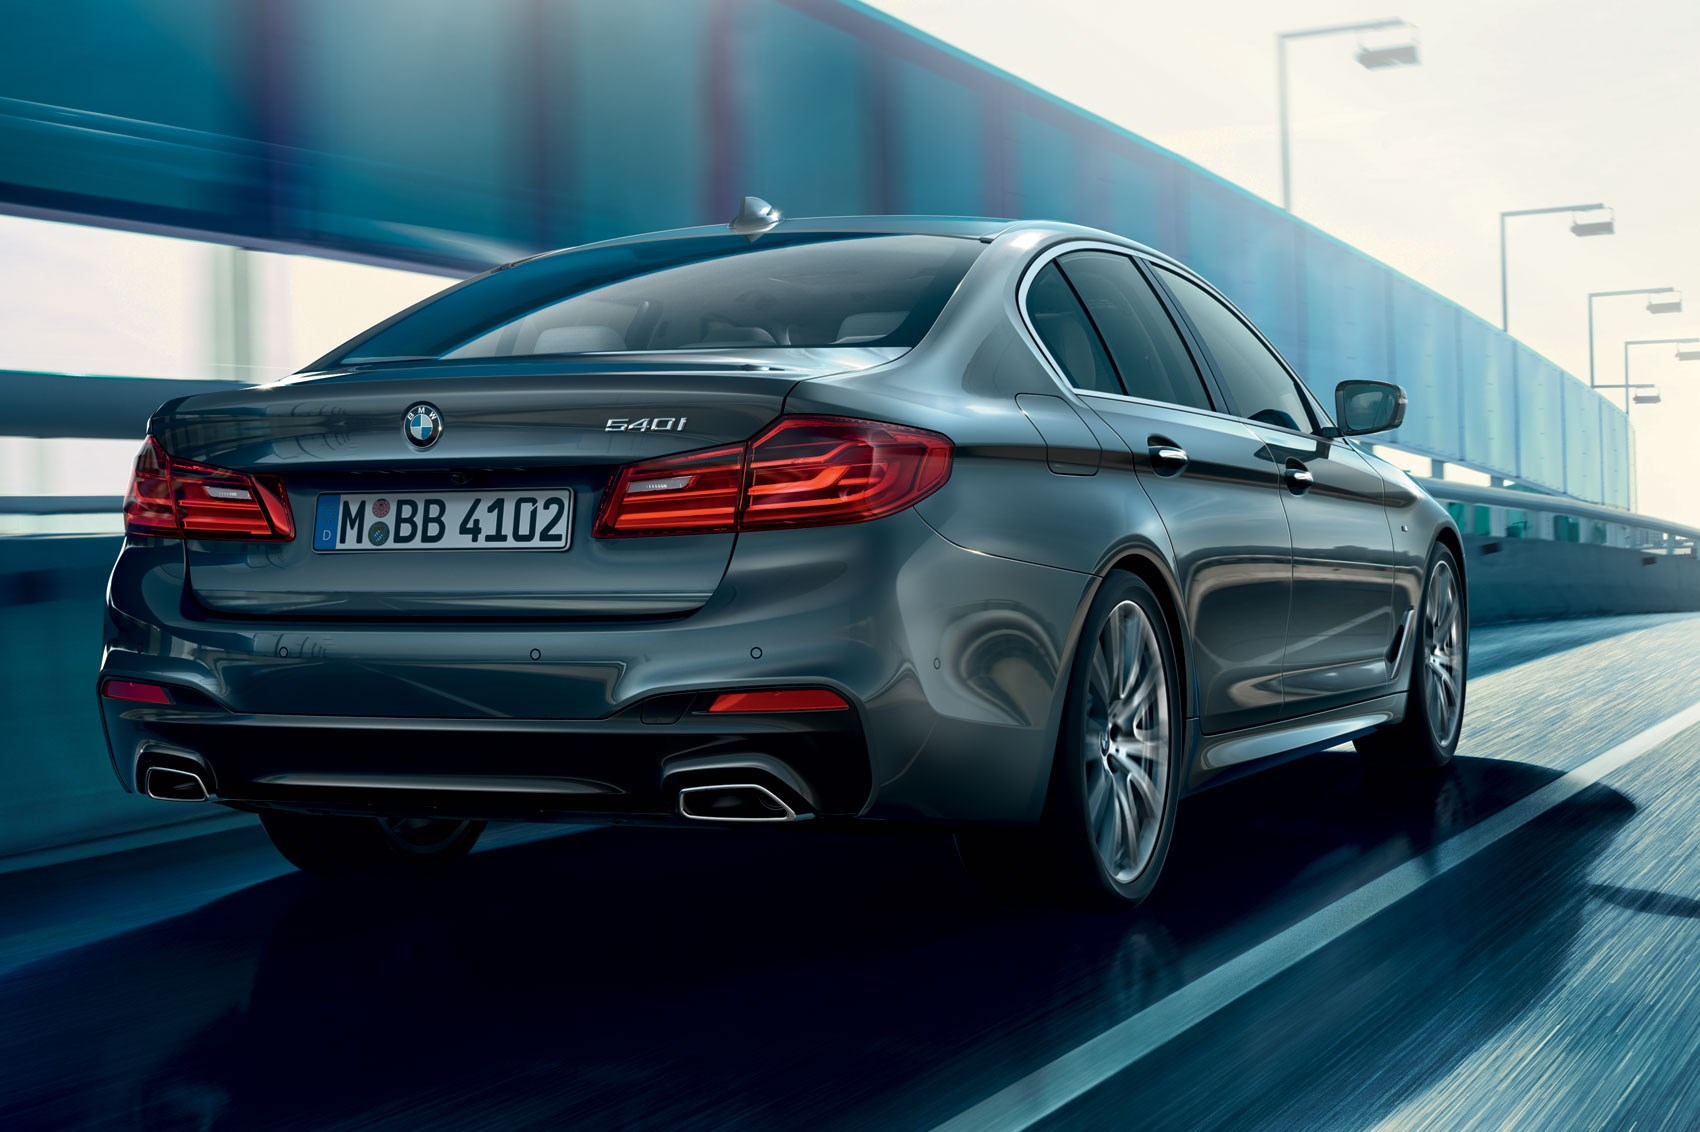 New BMW Series Revealed Lighter Quicker More Advanced By - All new bmw cars